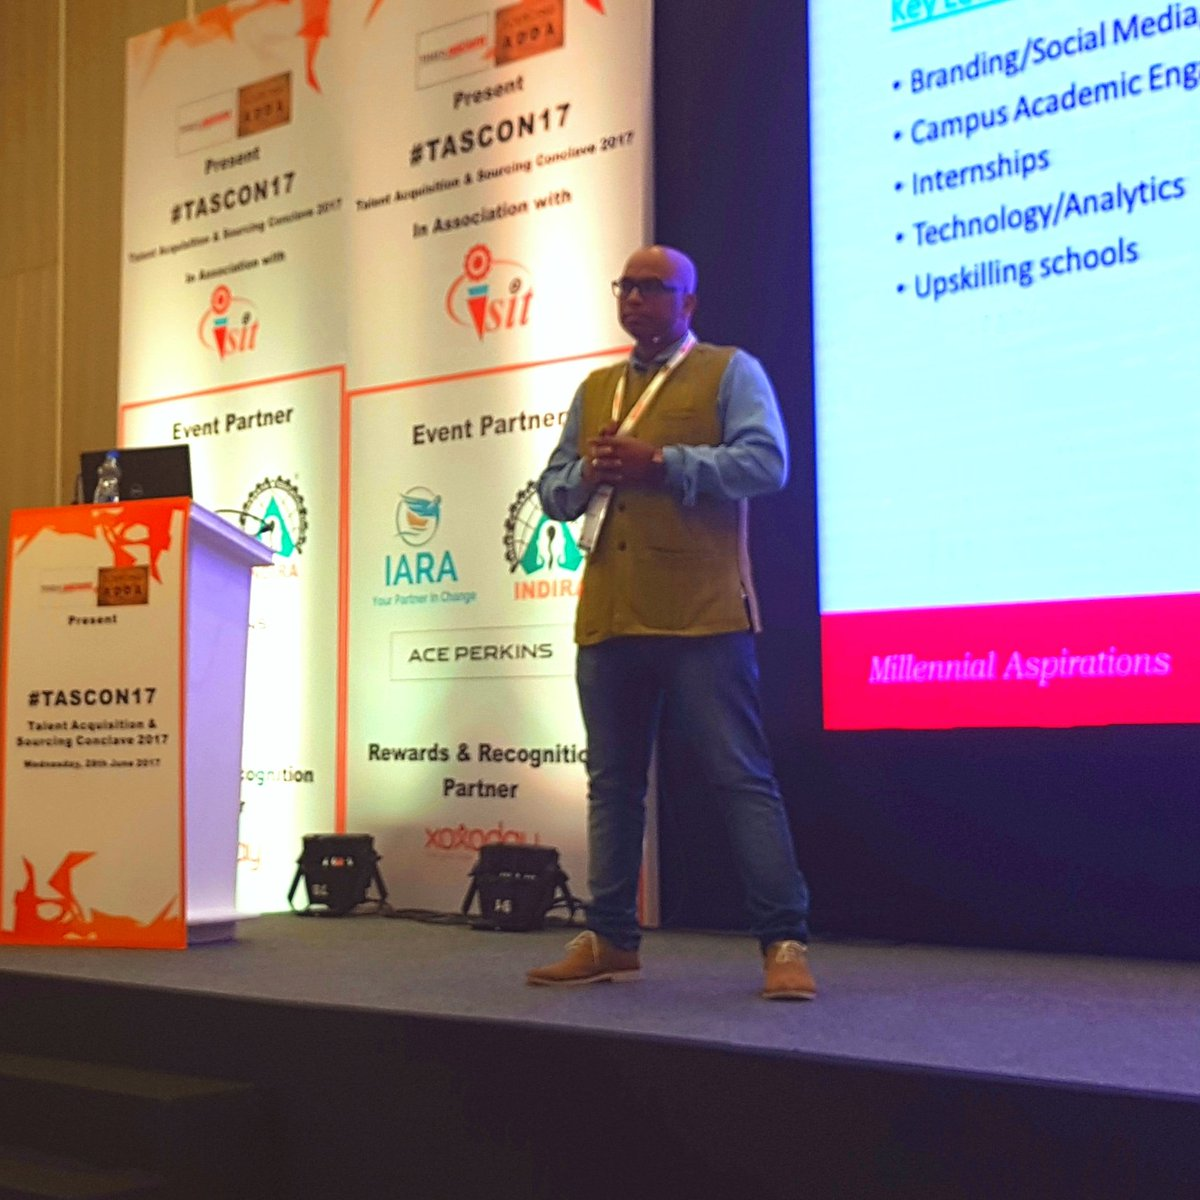 #Millennials working with you for 3 years is a great hire. @Madhavspeaks  #FutureOfWork #TASCON17<br>http://pic.twitter.com/1C5t9M3kQc